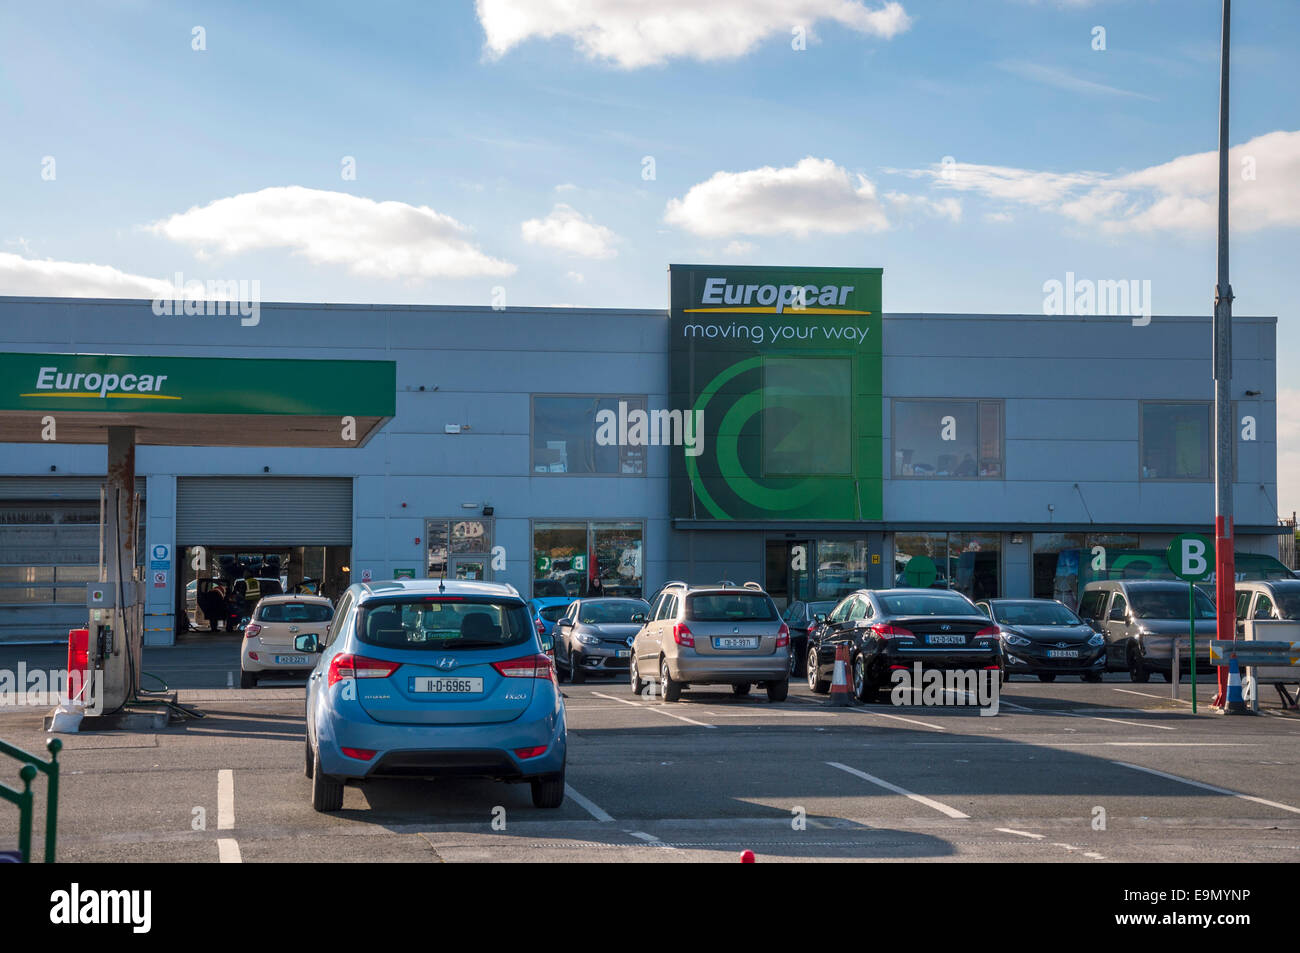 Europcar car rentals at Dublin airport Ireland Stock Photo